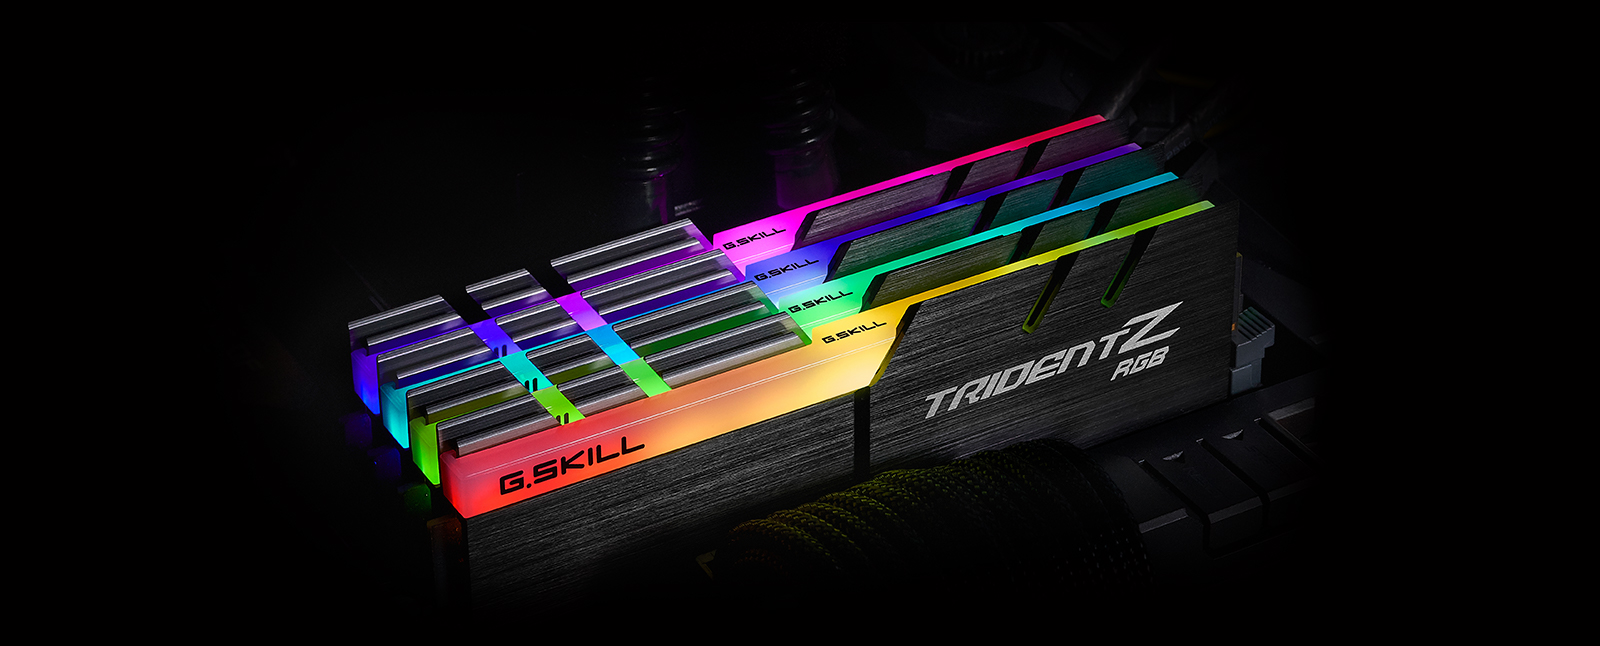 four tridentz rgb ddr4 memory installed on a motherboard, angled down to the right